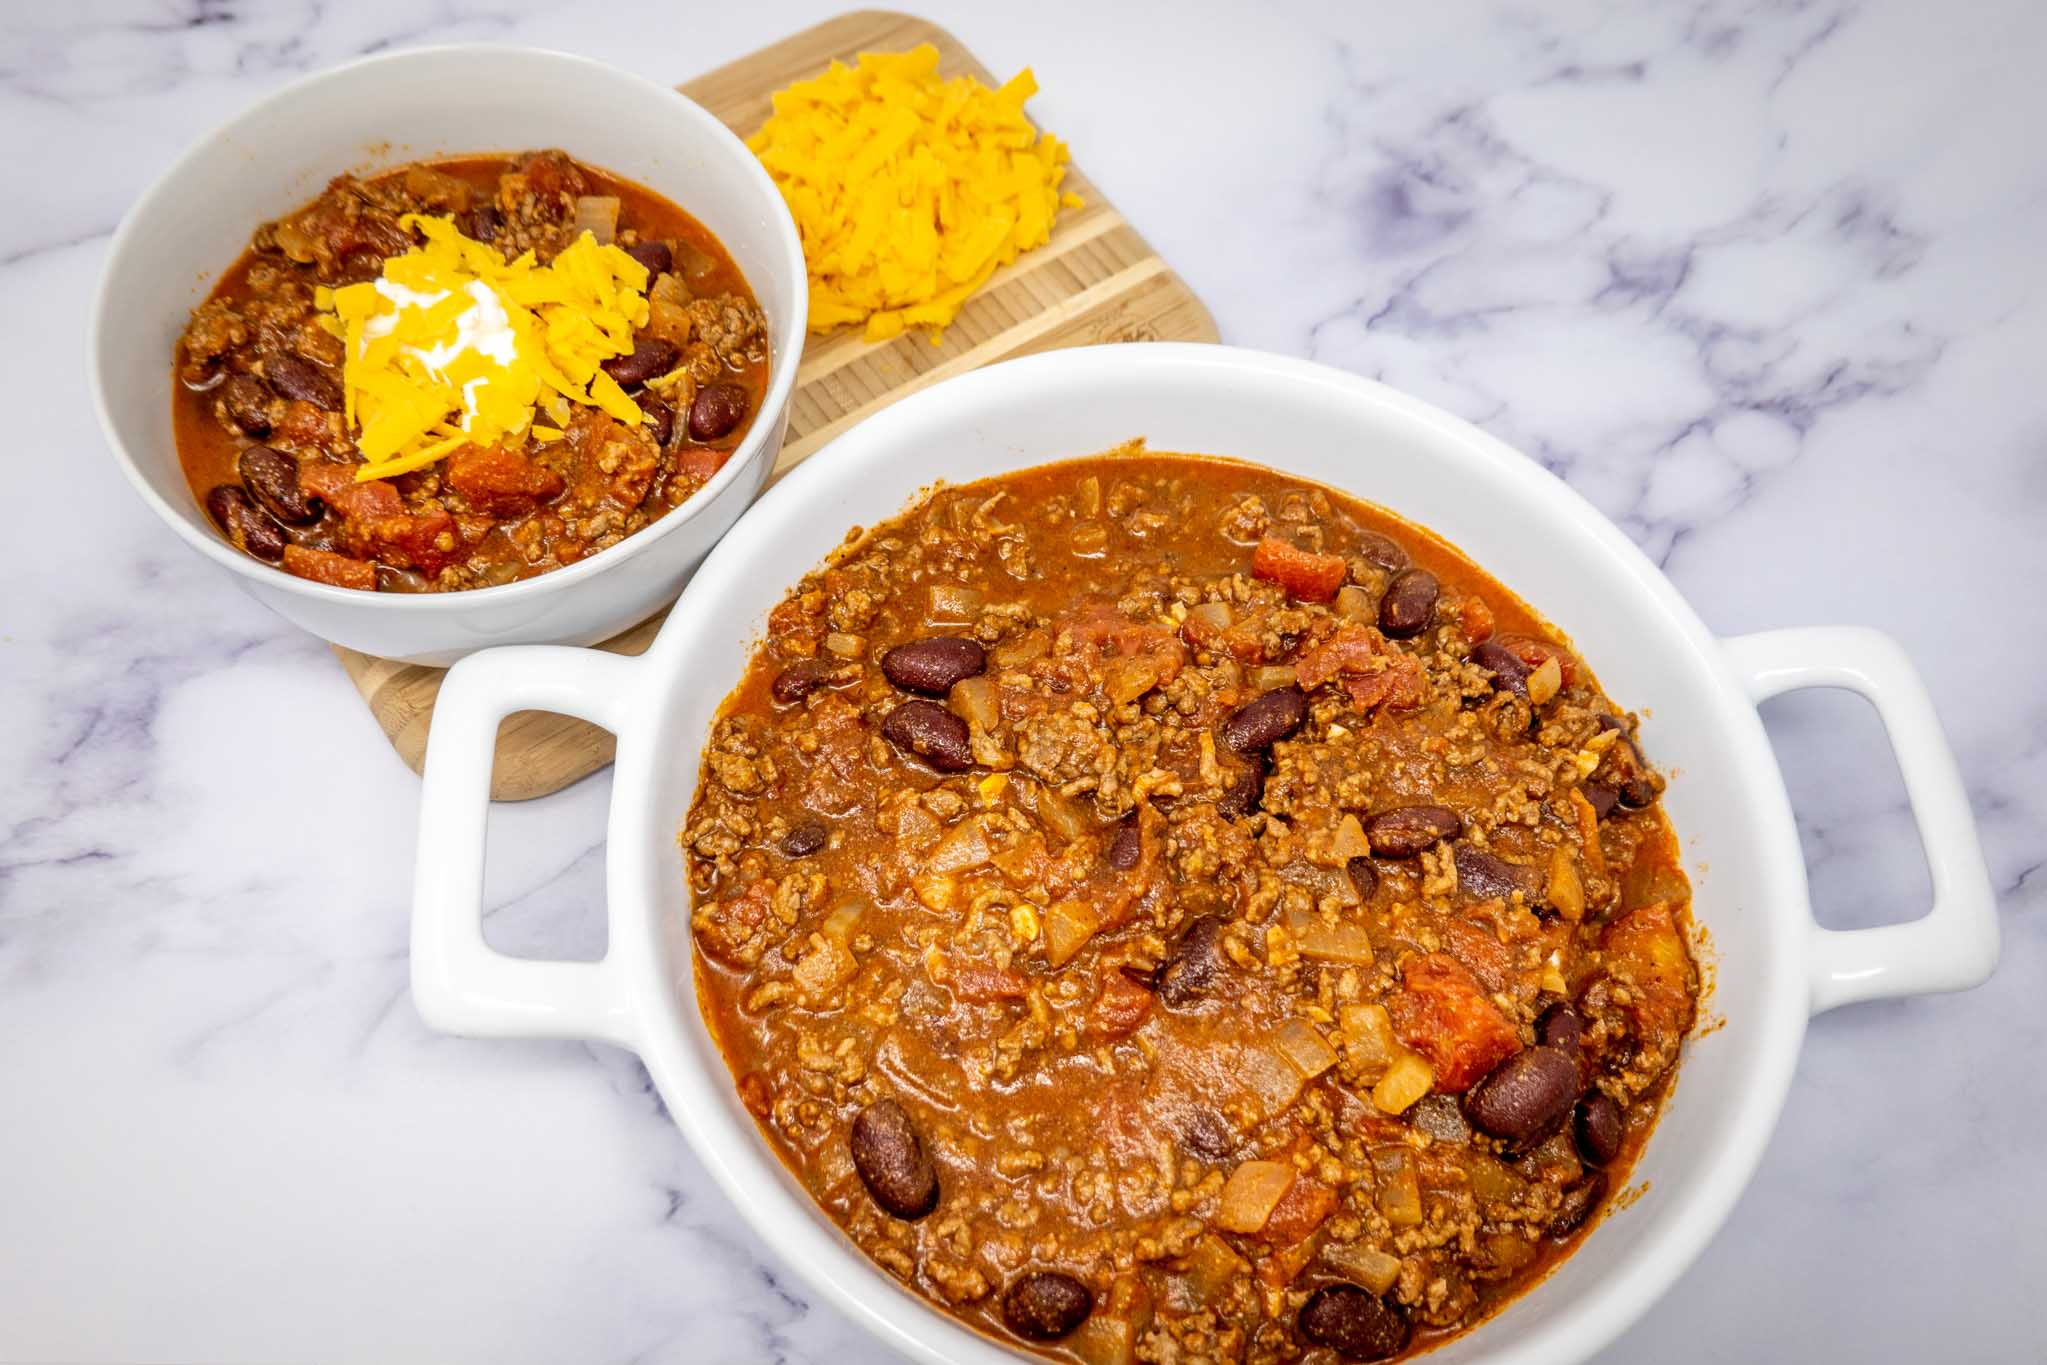 Dish and bowl of chili with shredded cheddar cheese